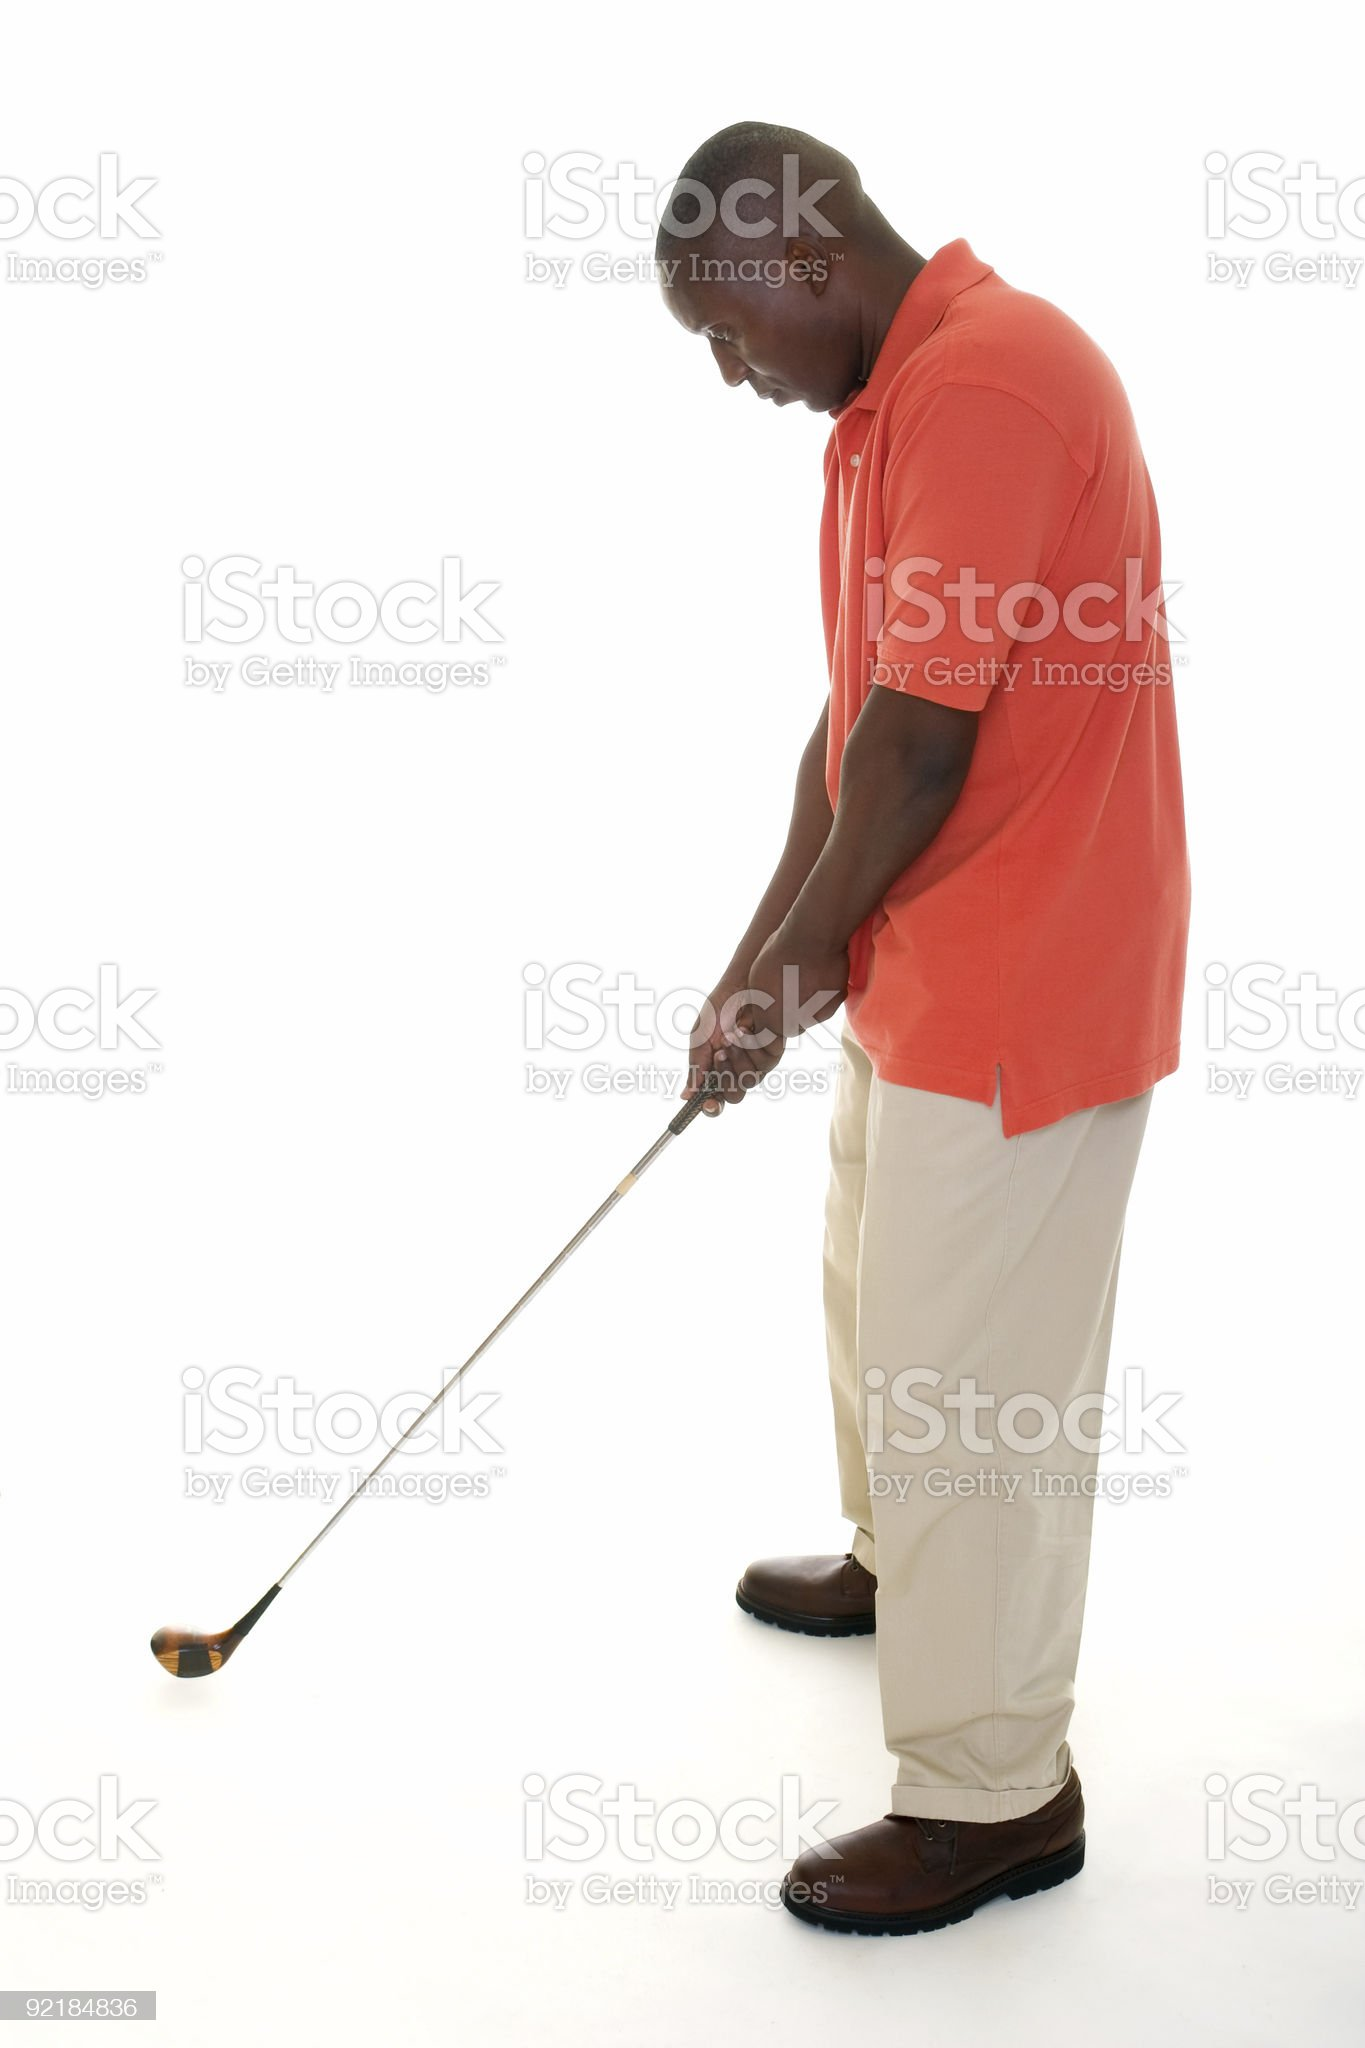 African American Man Swinging Golf Club royalty-free stock photo